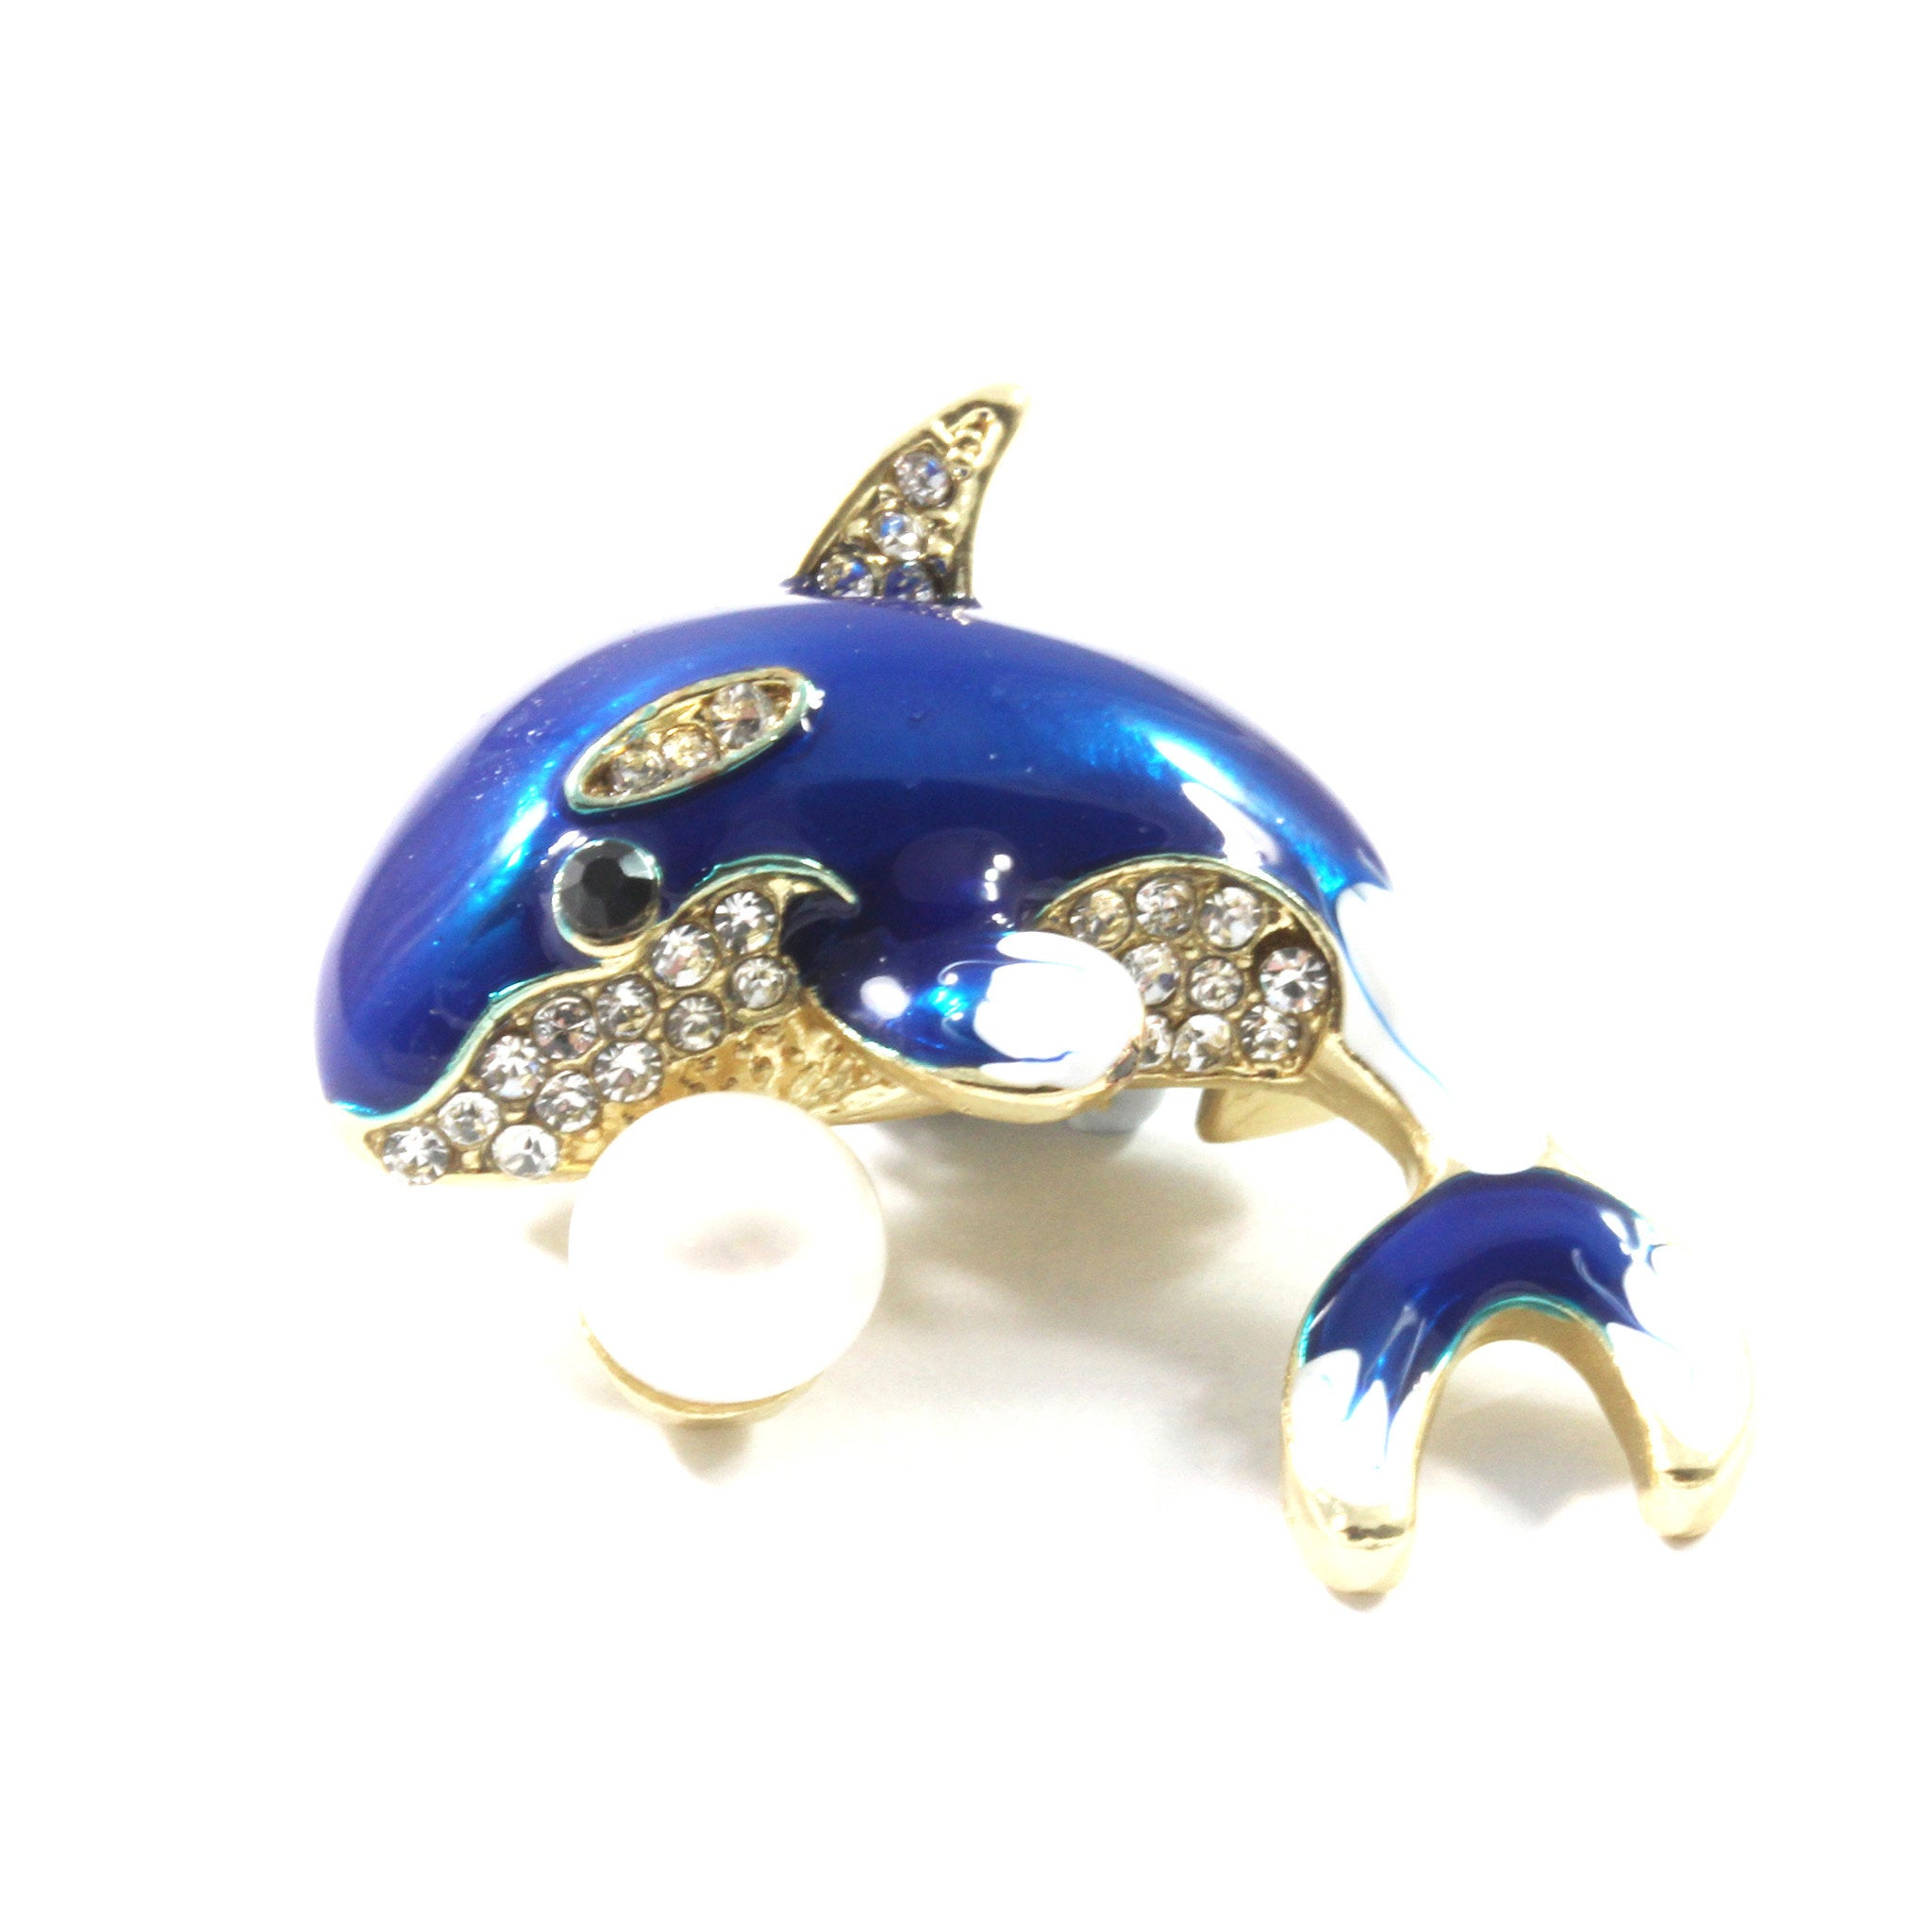 Blue Dolphin Freshwater Cultured Pearl Brooch 7.5-8.0mm